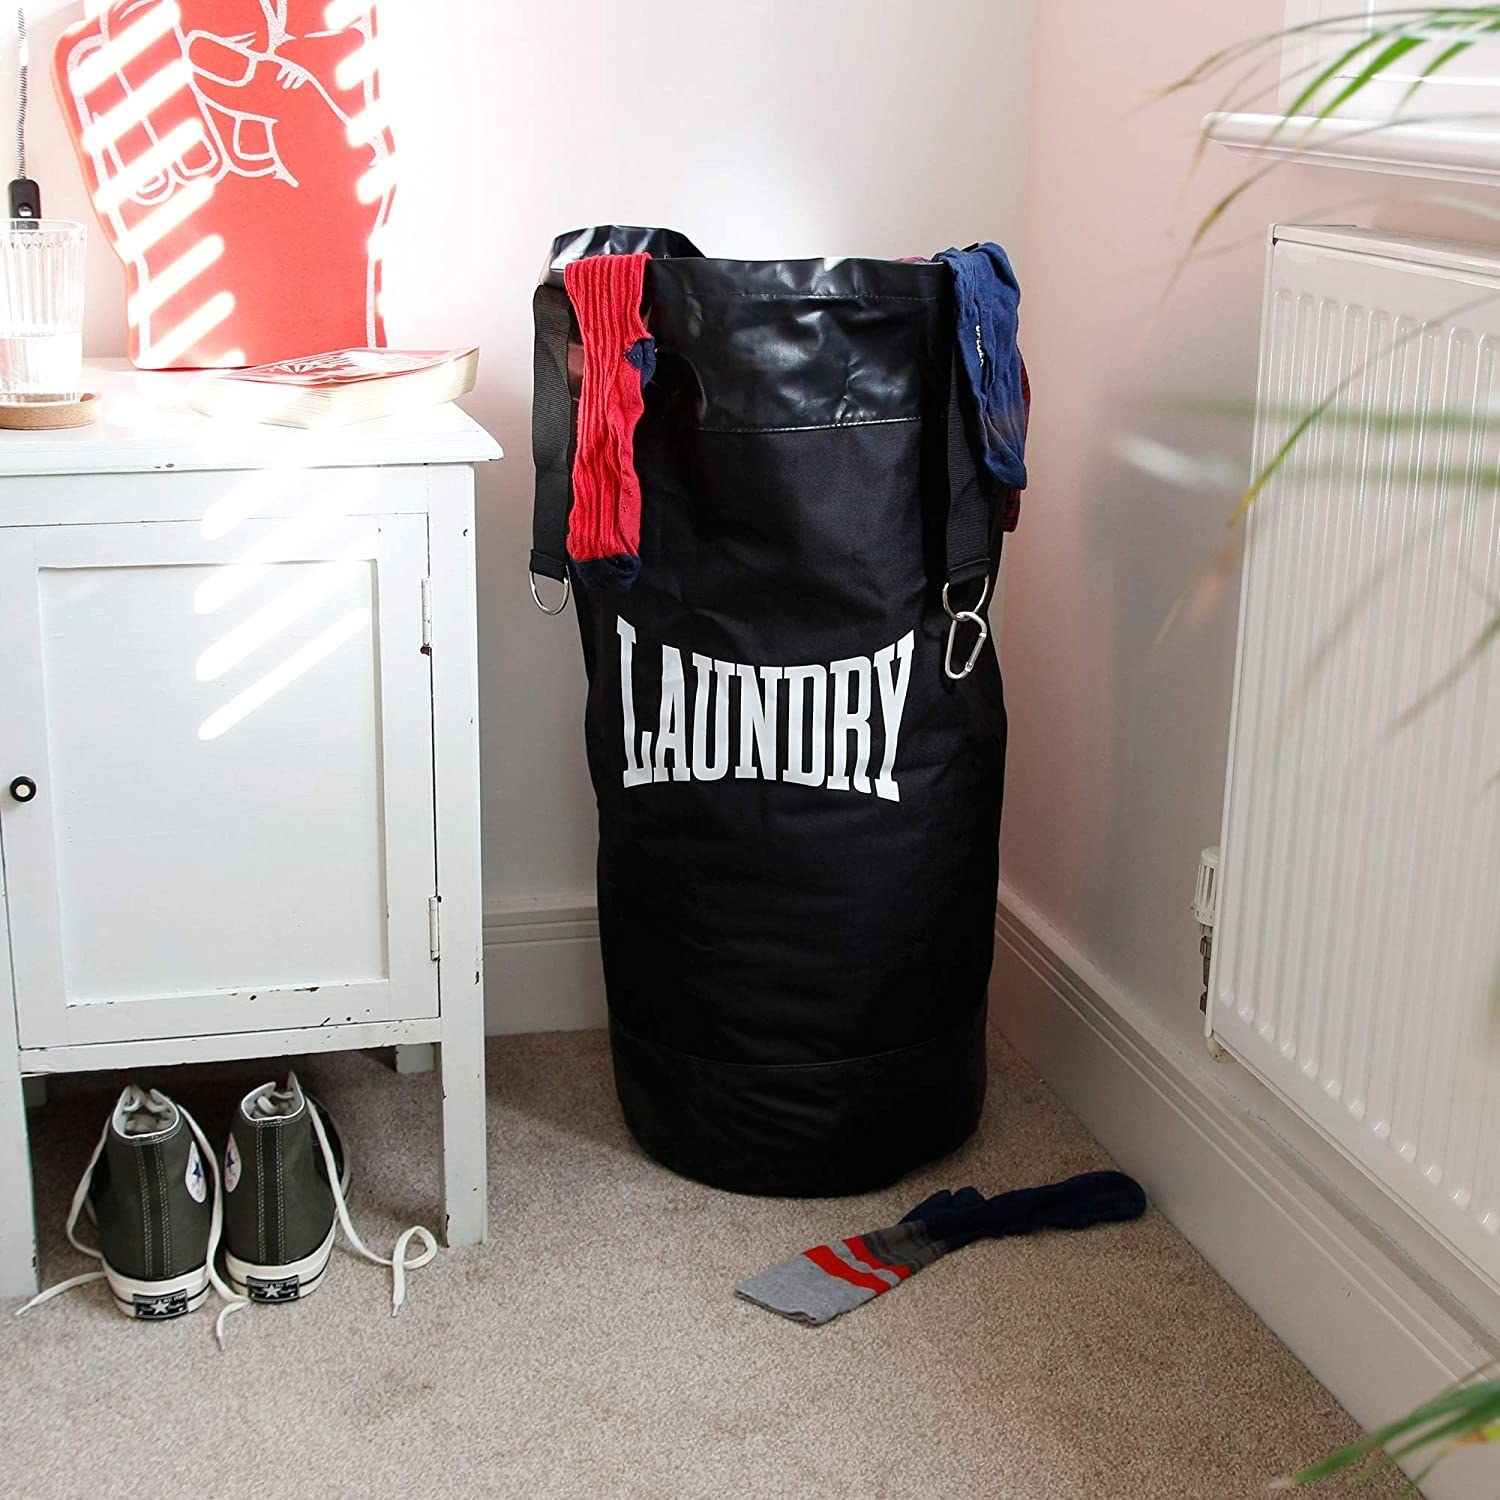 The laundry bag in black